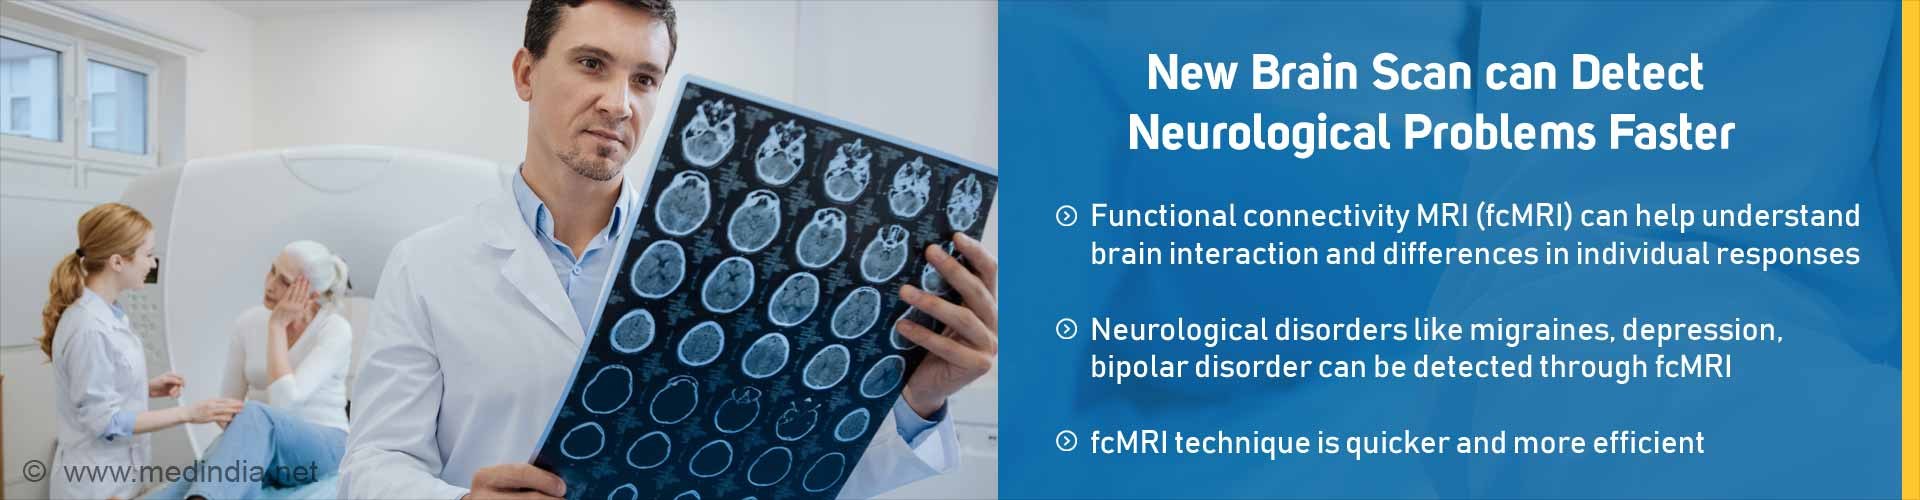 new brain can can detect neurological problem faster